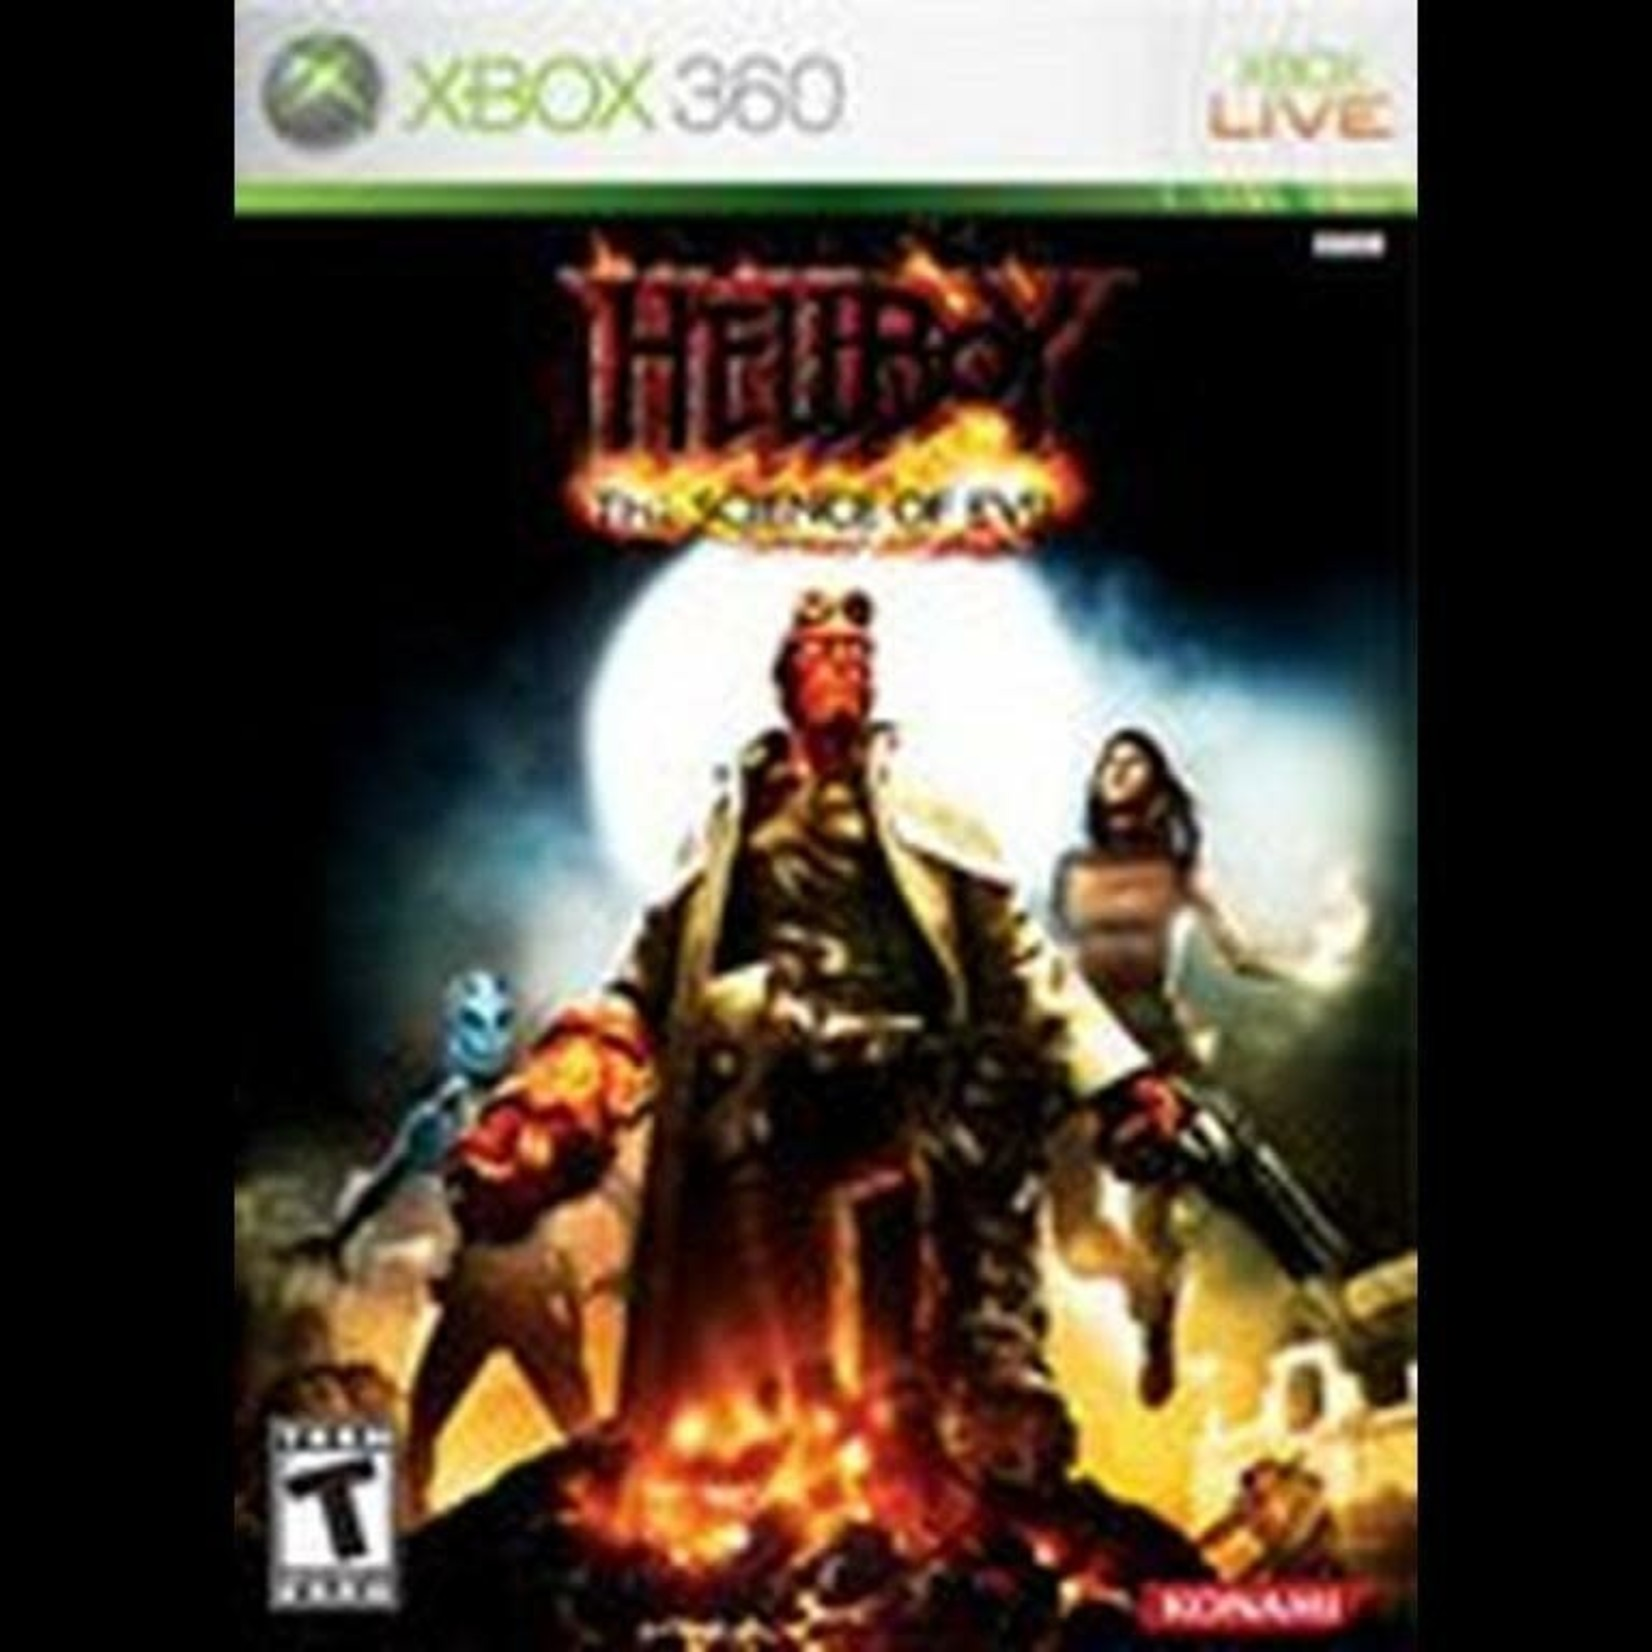 X3-Hellboy: The Science of Evil